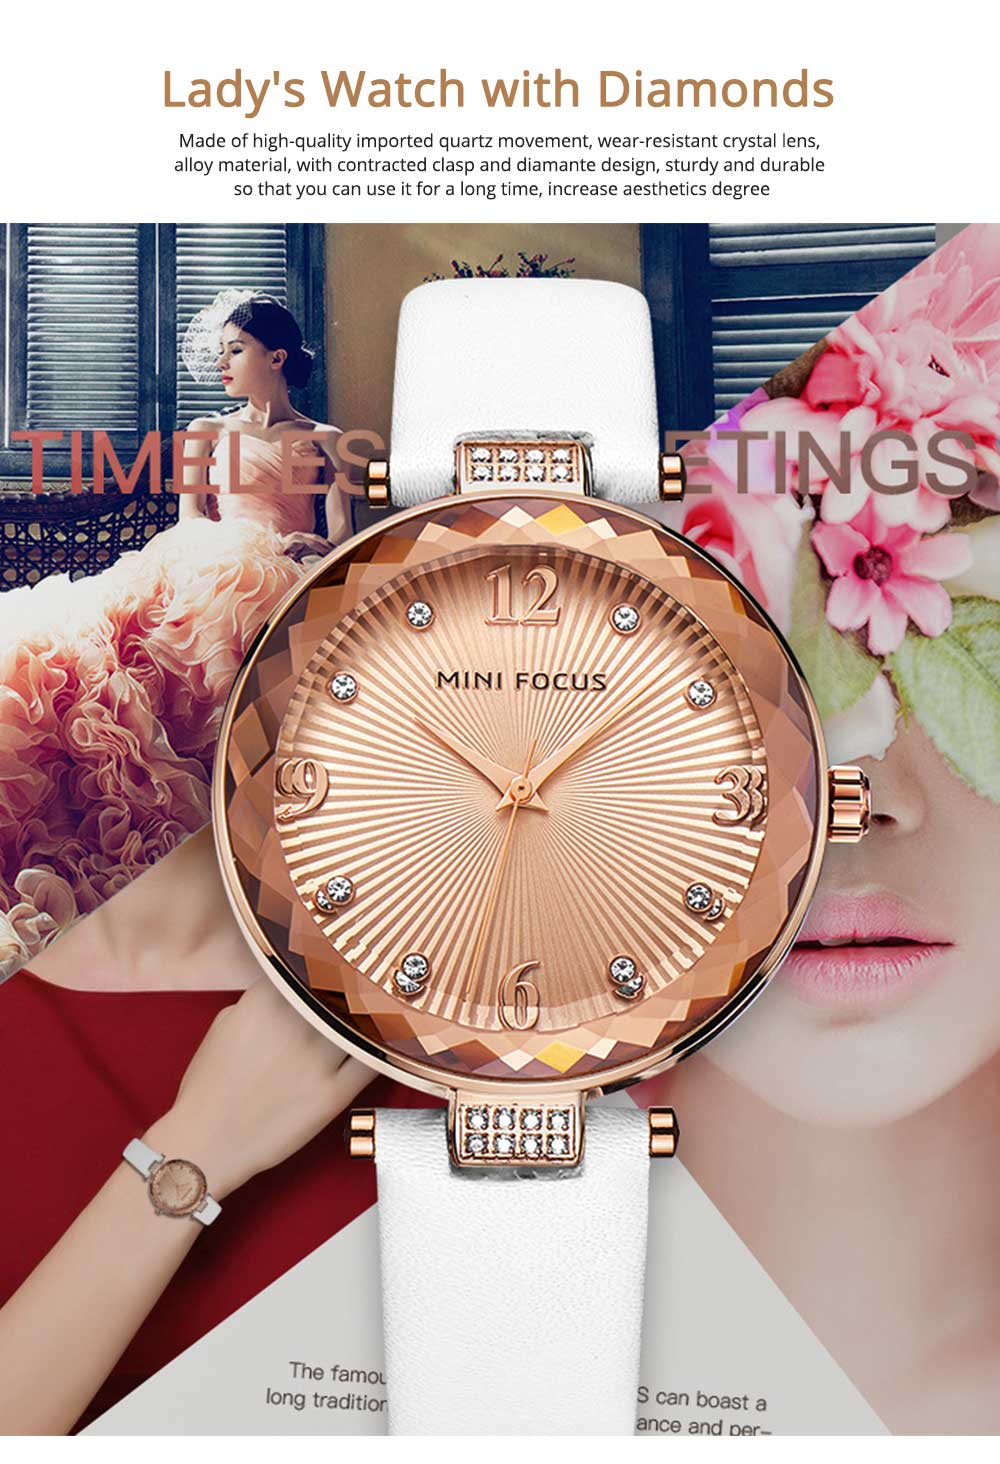 Lady's Watch with Diamonds Imported Quartz Movement for Business, Wear-resistant Crystal Lens Delicate Watches 0